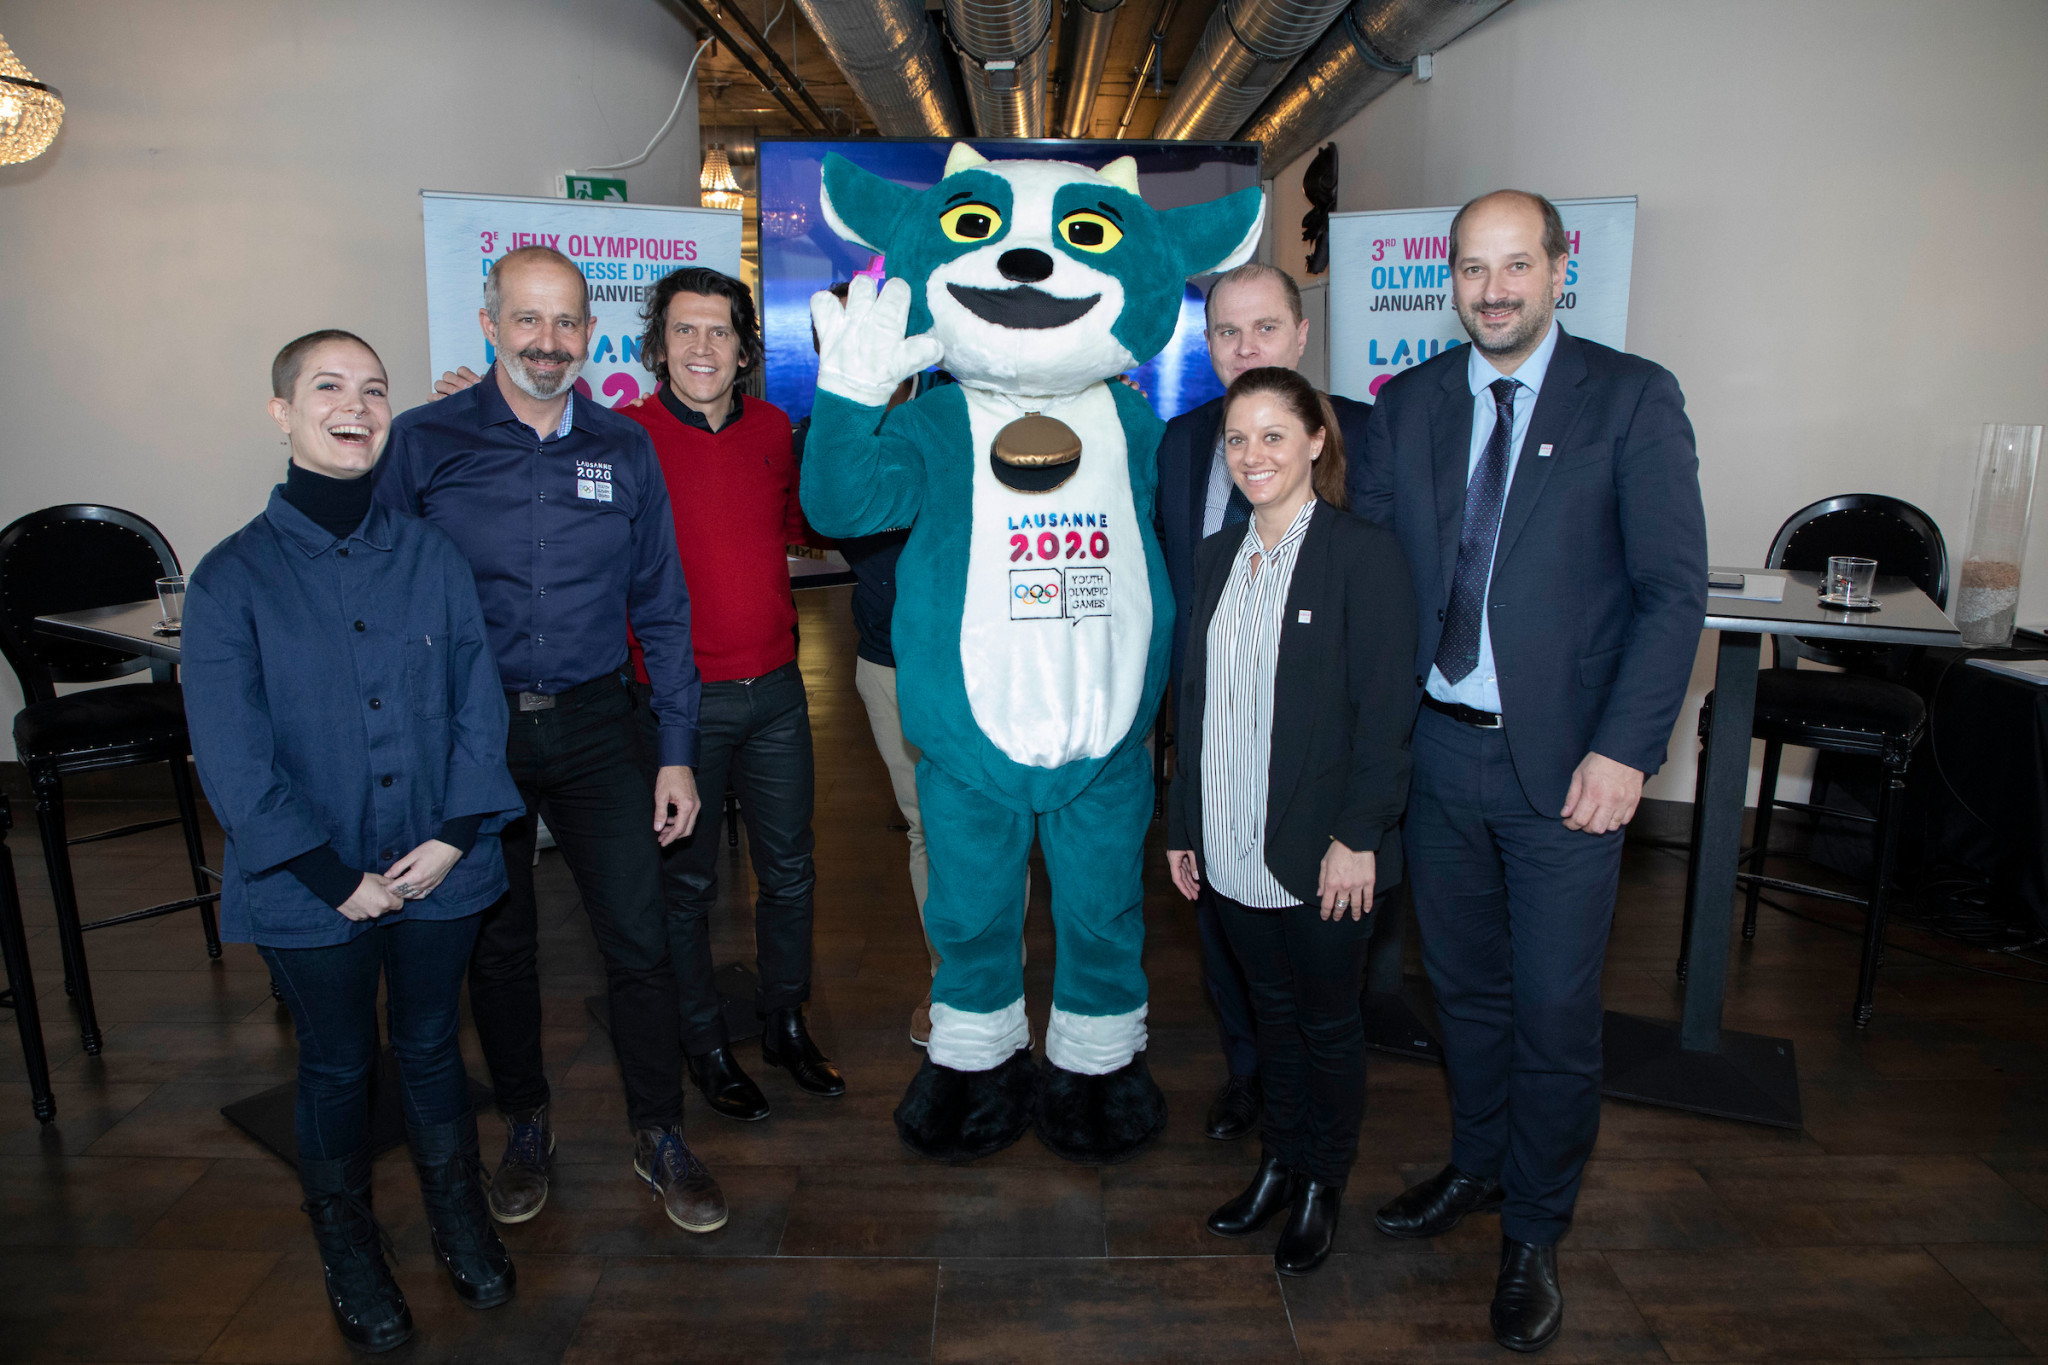 IOC and Lausanne 2020 officials promised the event would be a success ©IOC